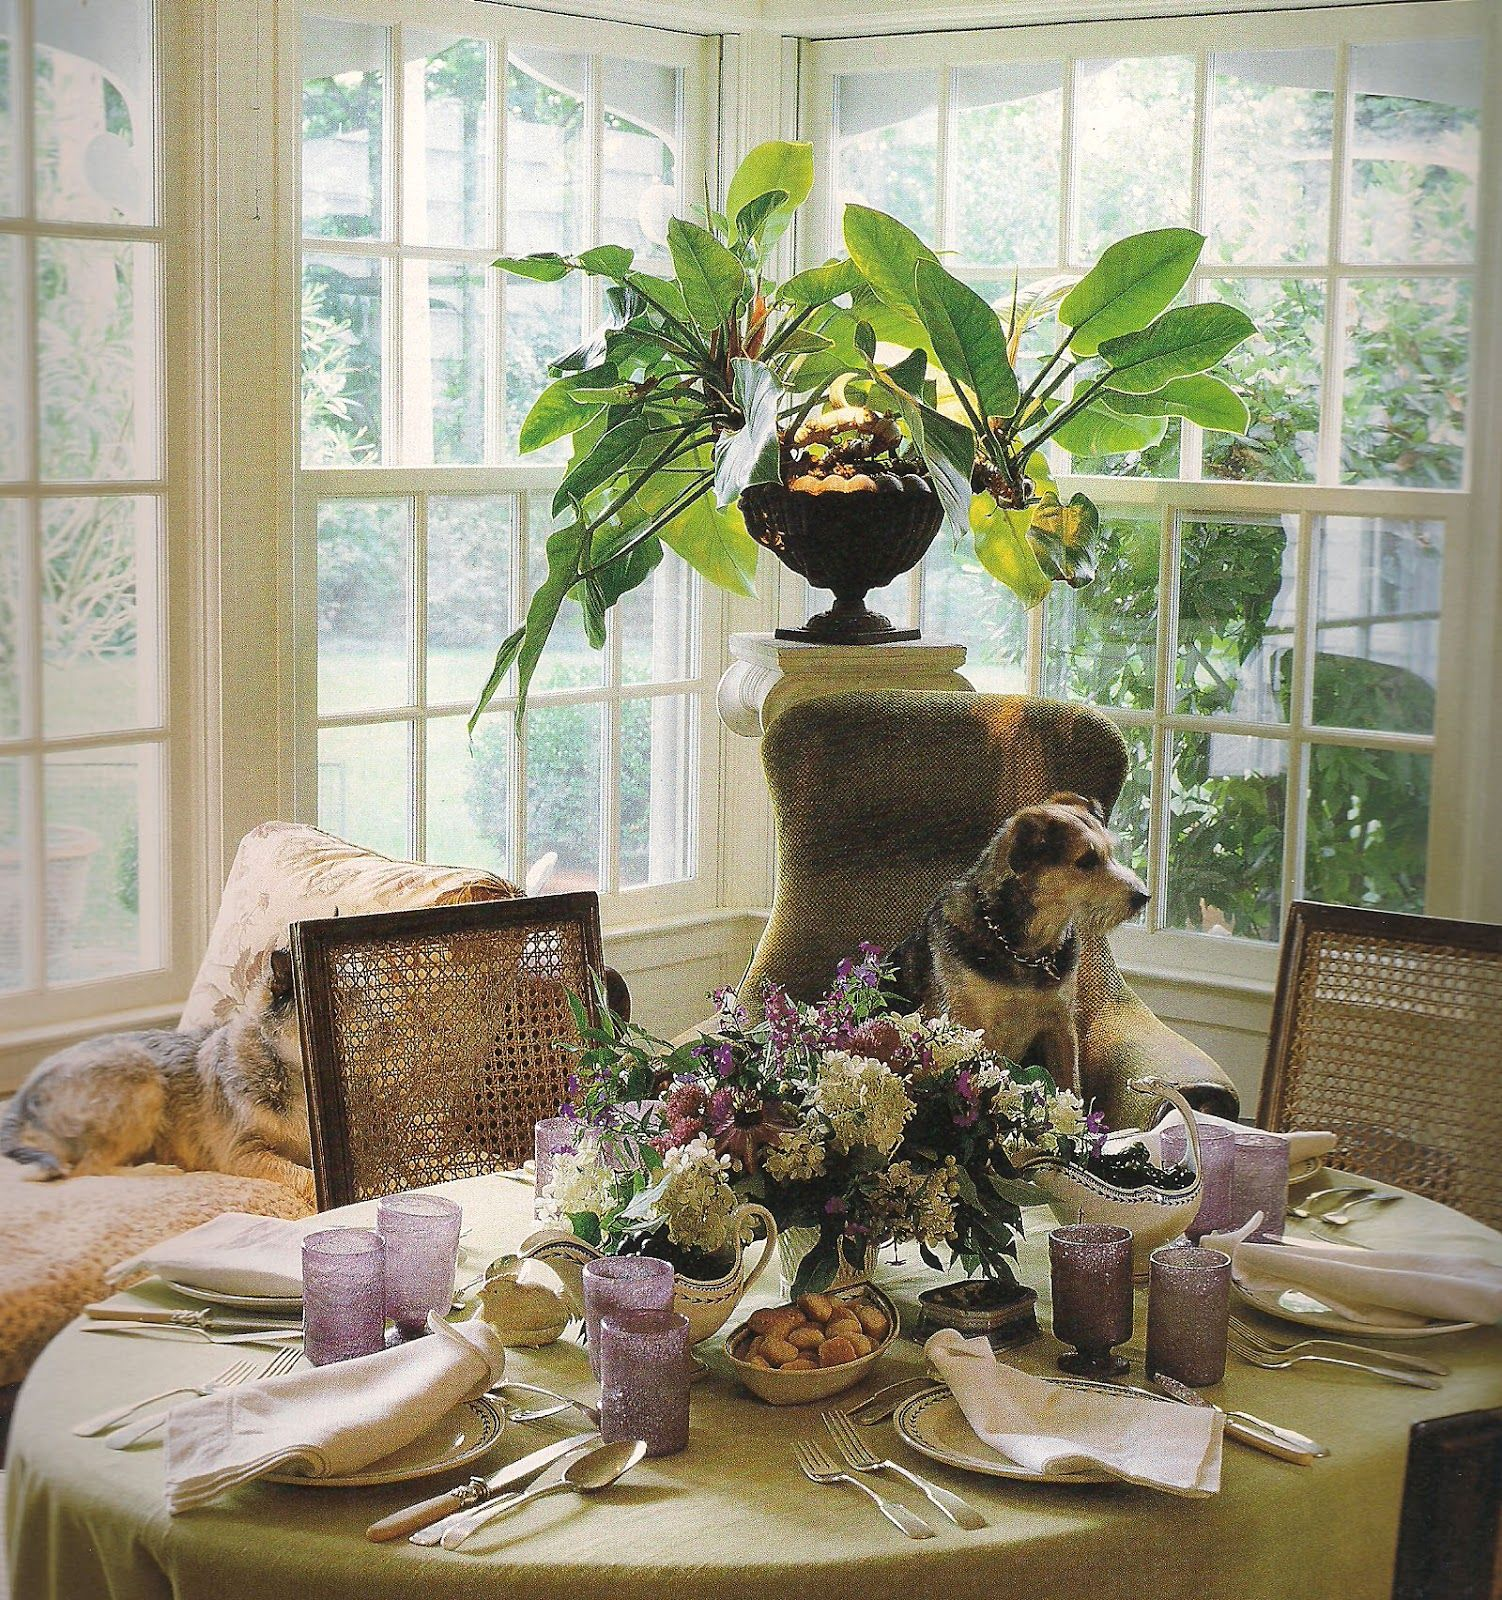 bunny williams connecticut kitchen decorated with dogs vanishing rh pinterest com